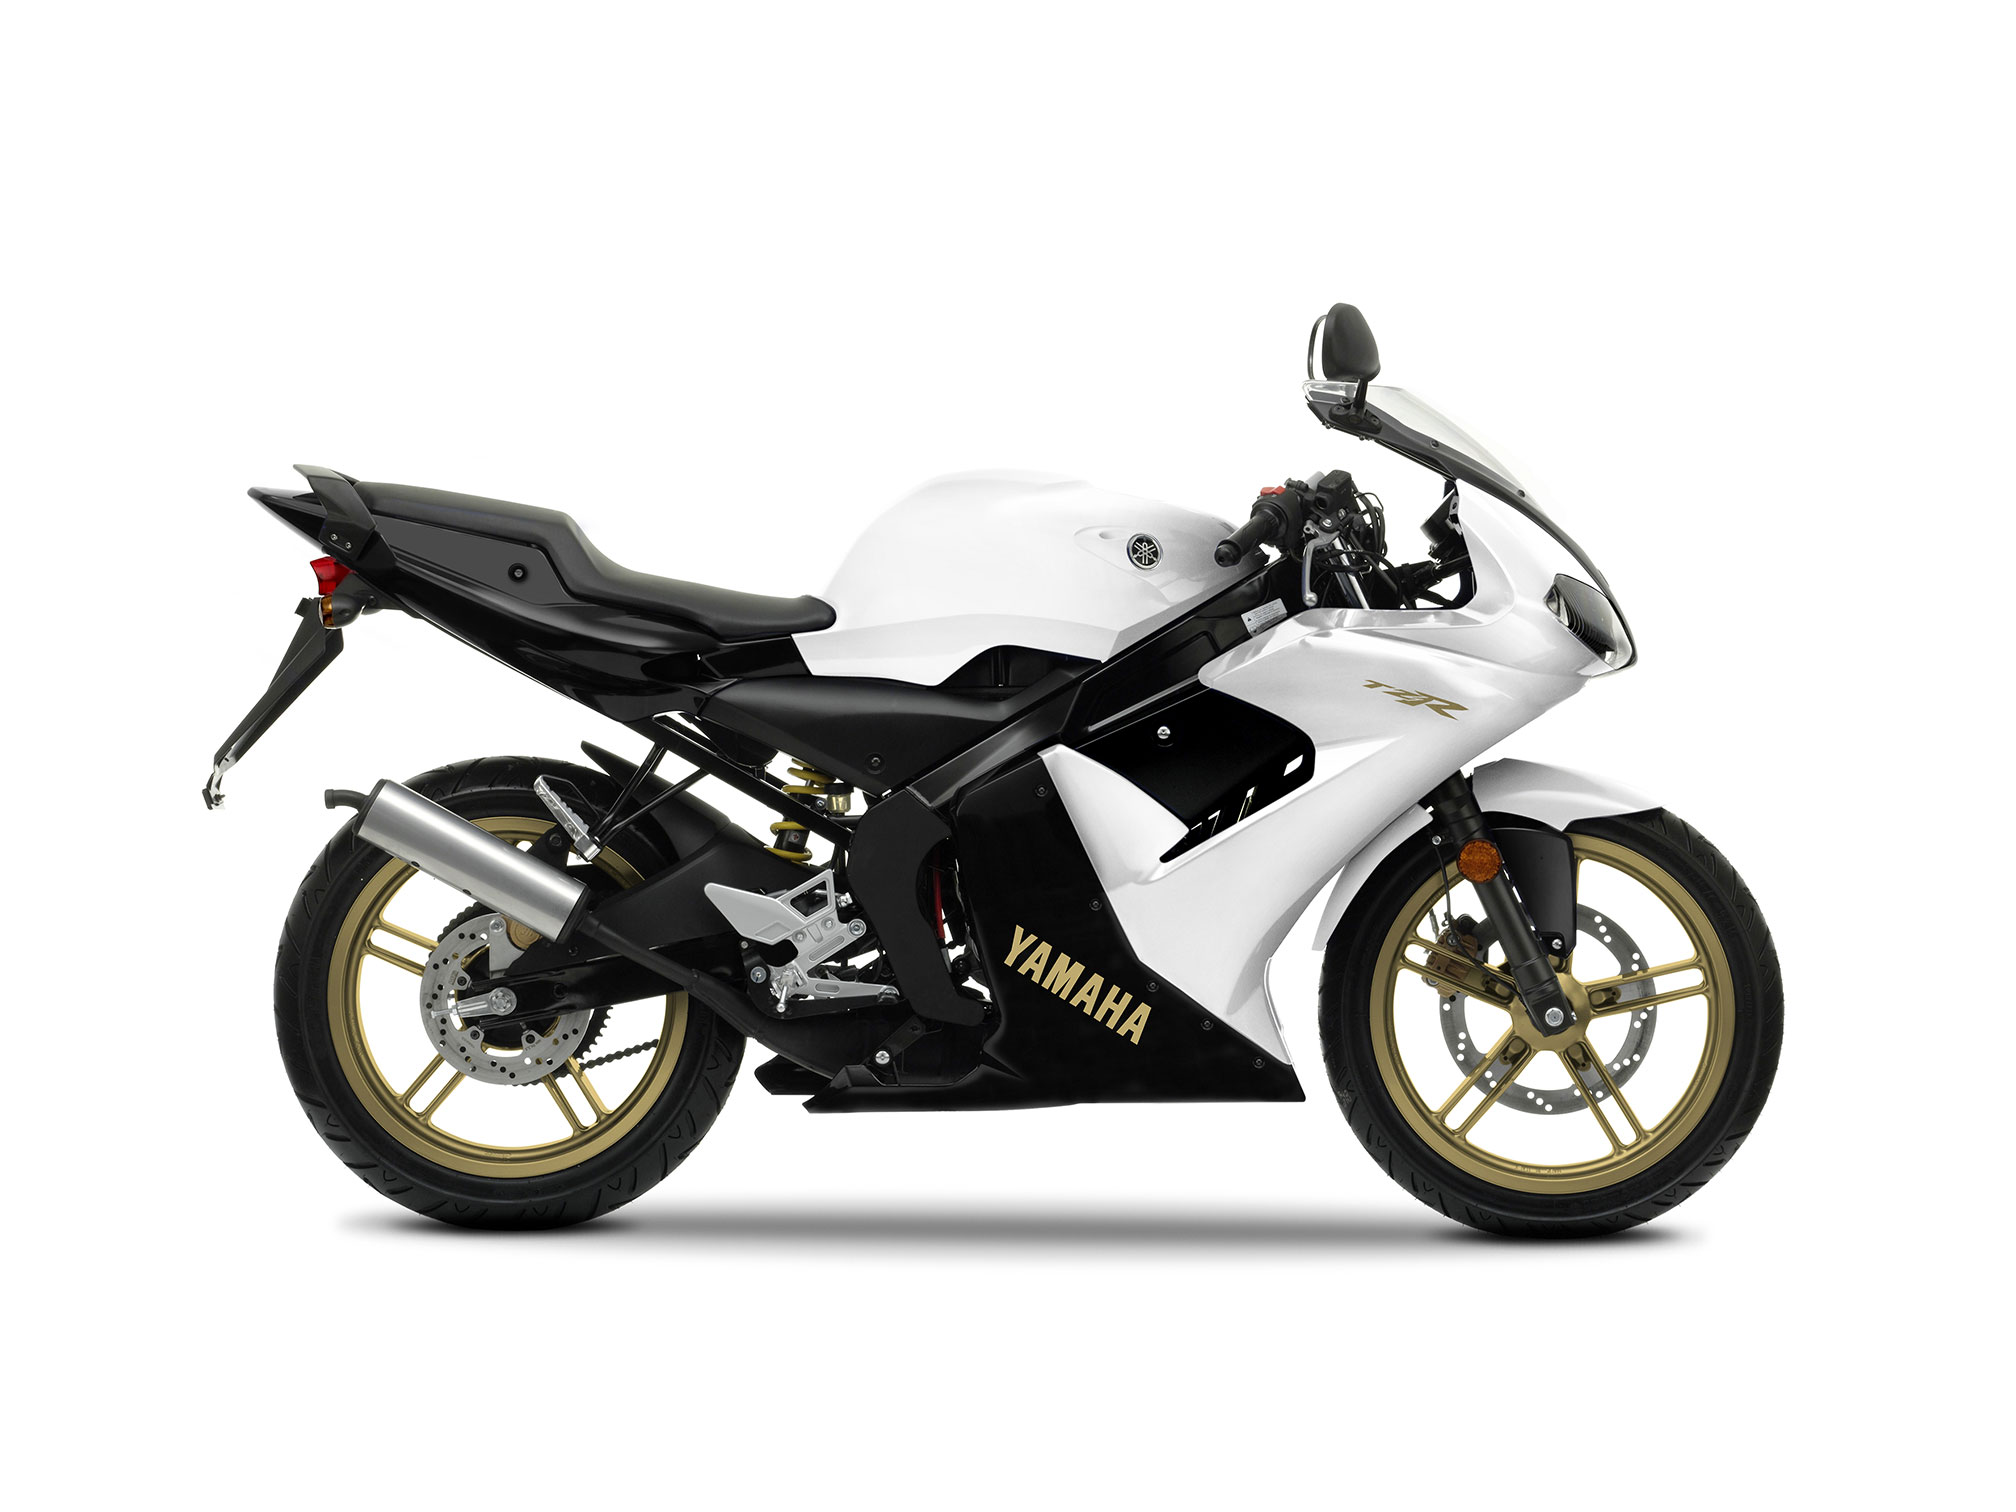 Yamaha tzr50 photo - 8